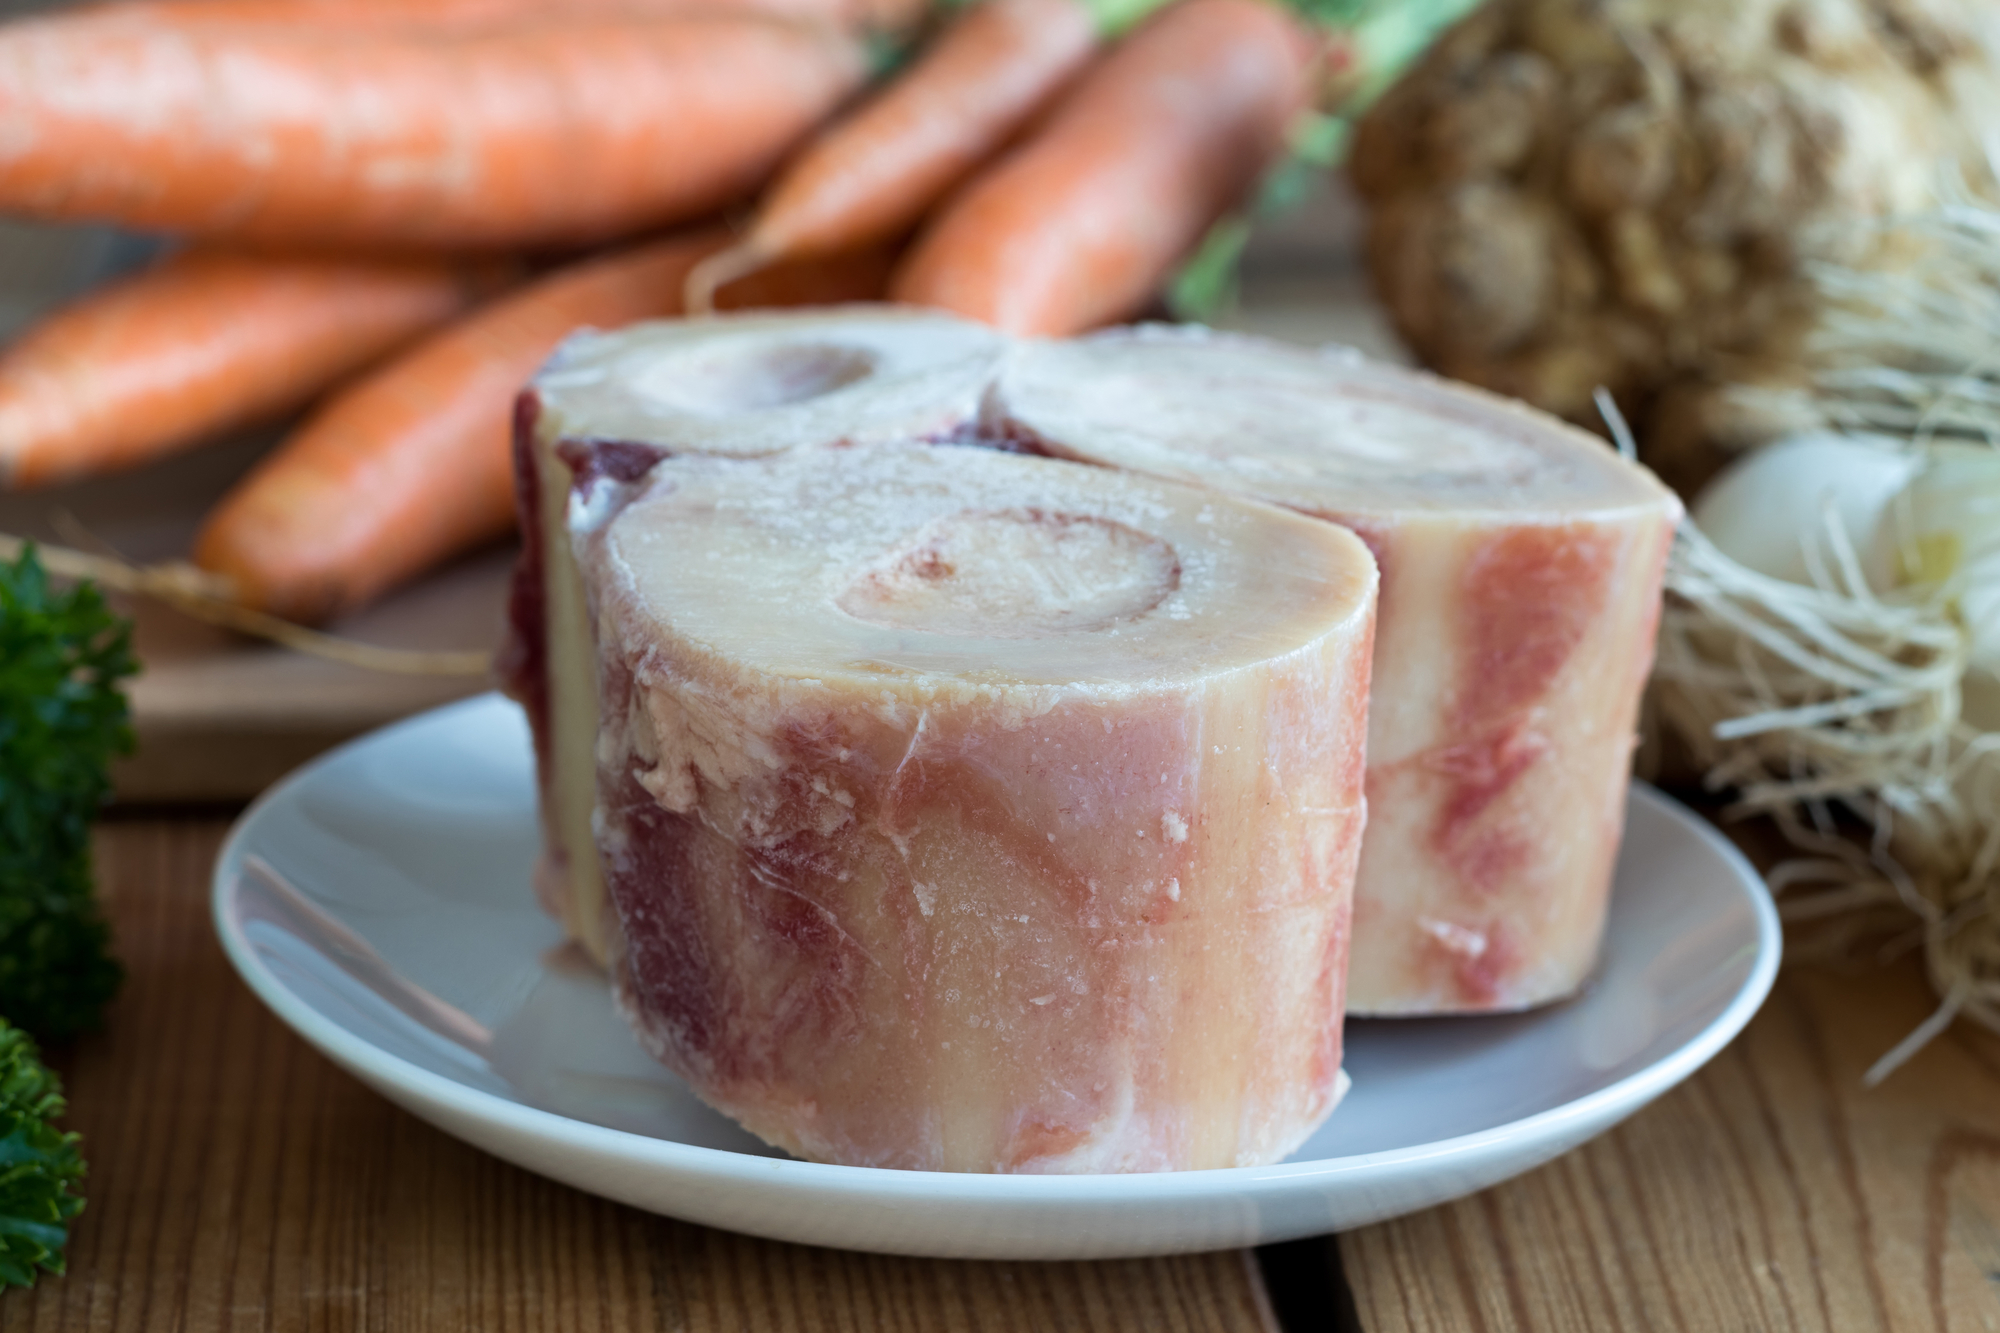 What Bones Can You Use To Make Bone Broth?